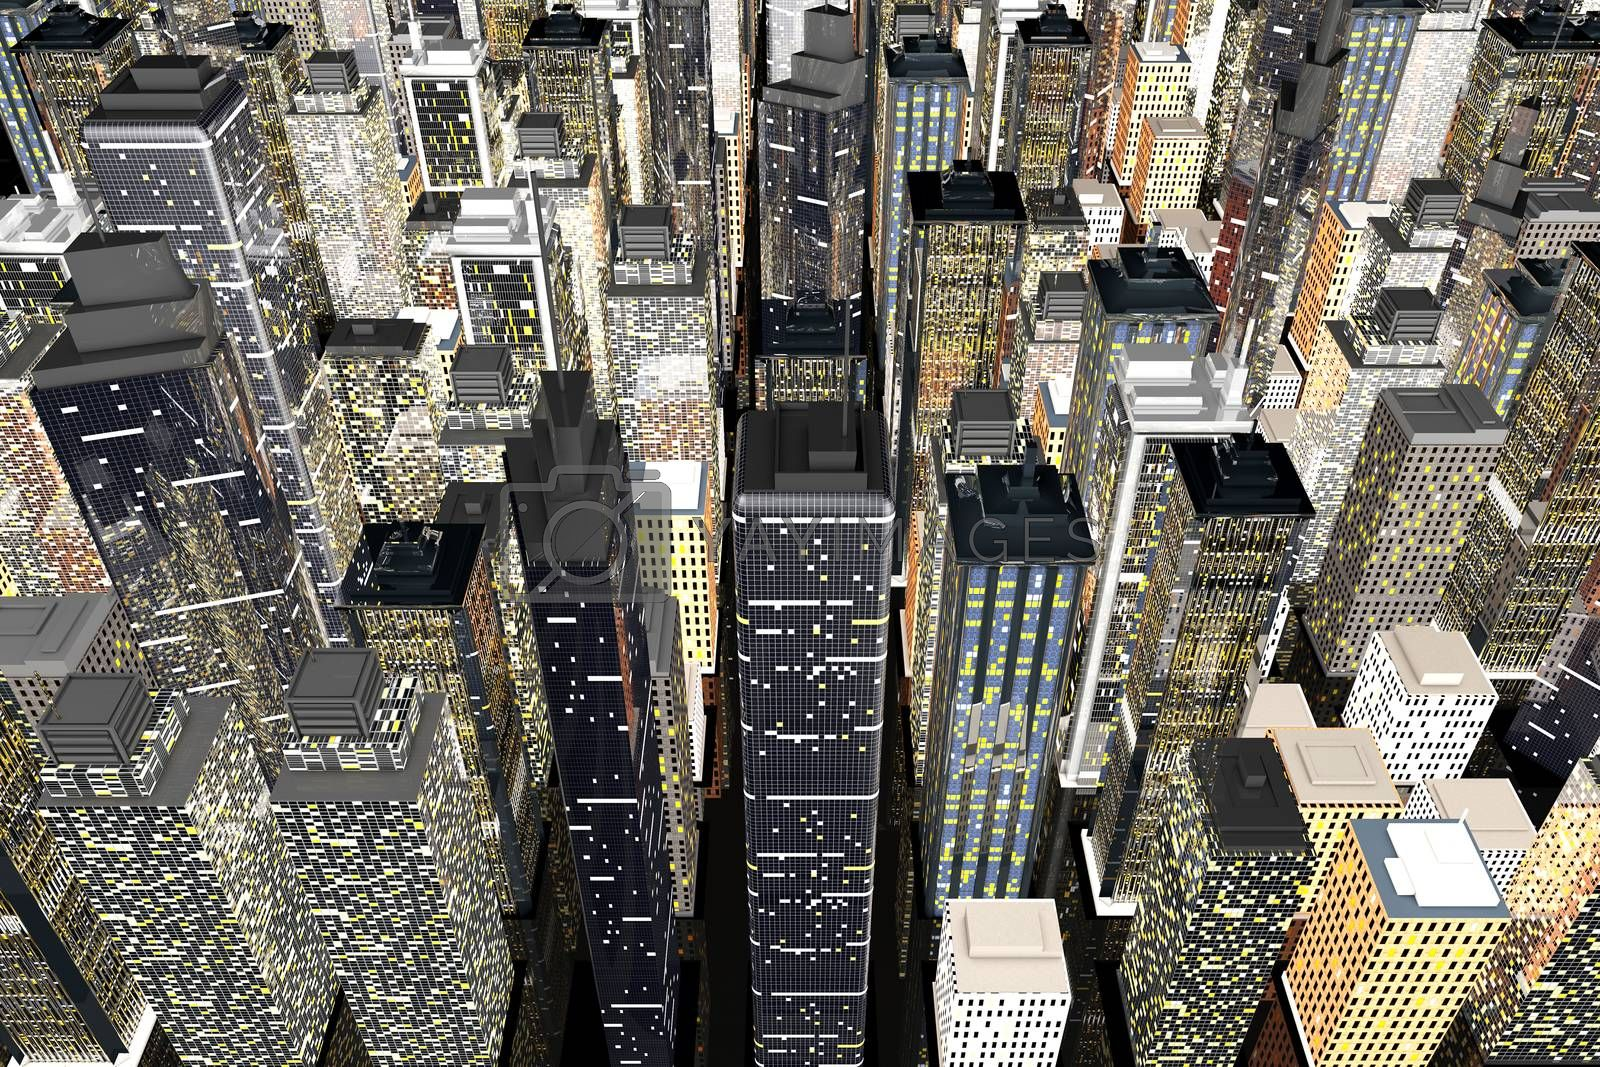 Generic urban architecture and skyscrapers forming a huge city. 3D rendered Illustration.